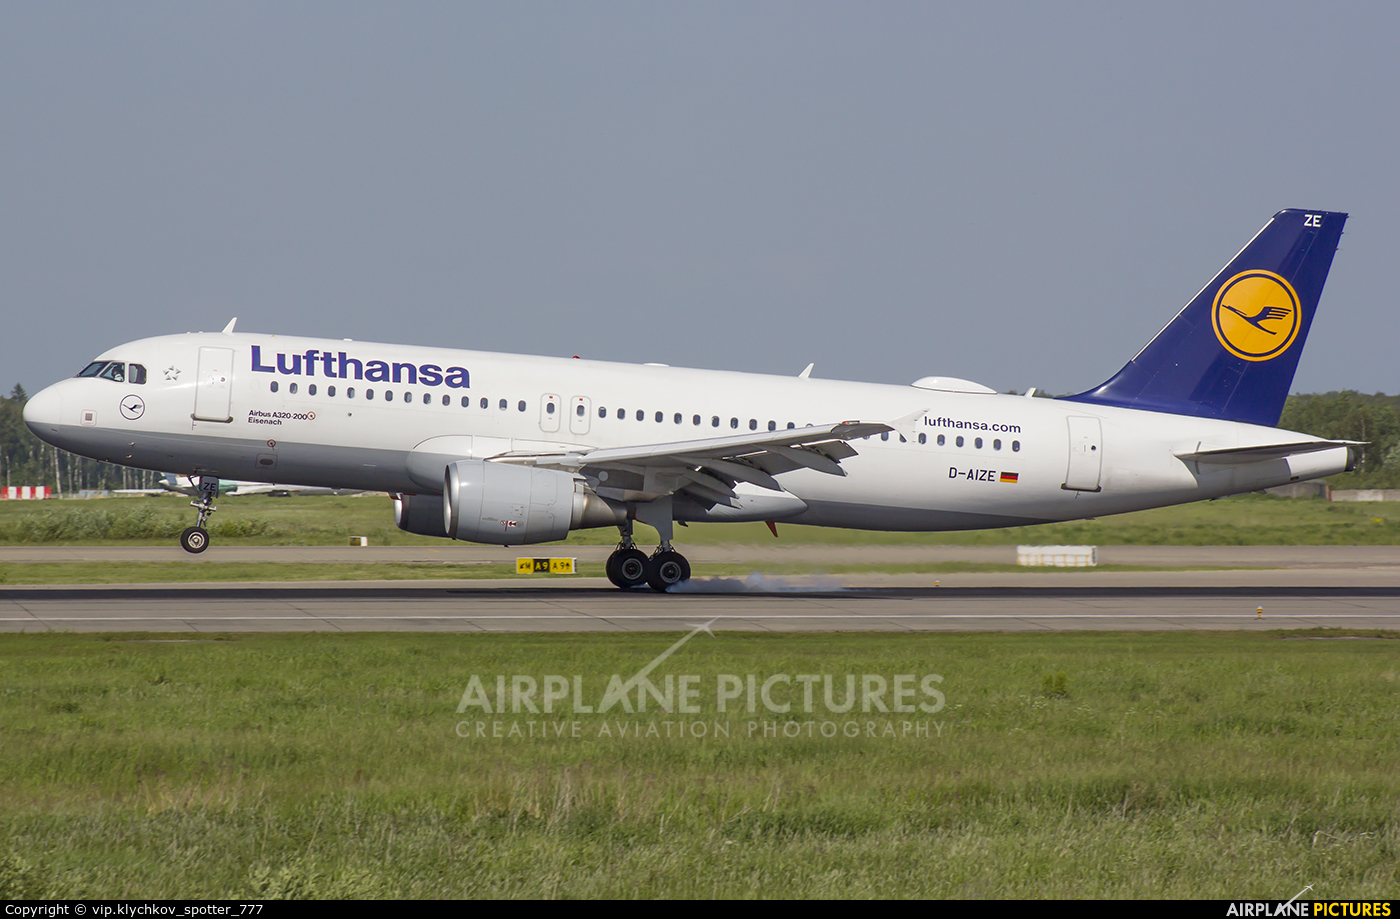 Lufthansa D-AIZE aircraft at Moscow - Domodedovo